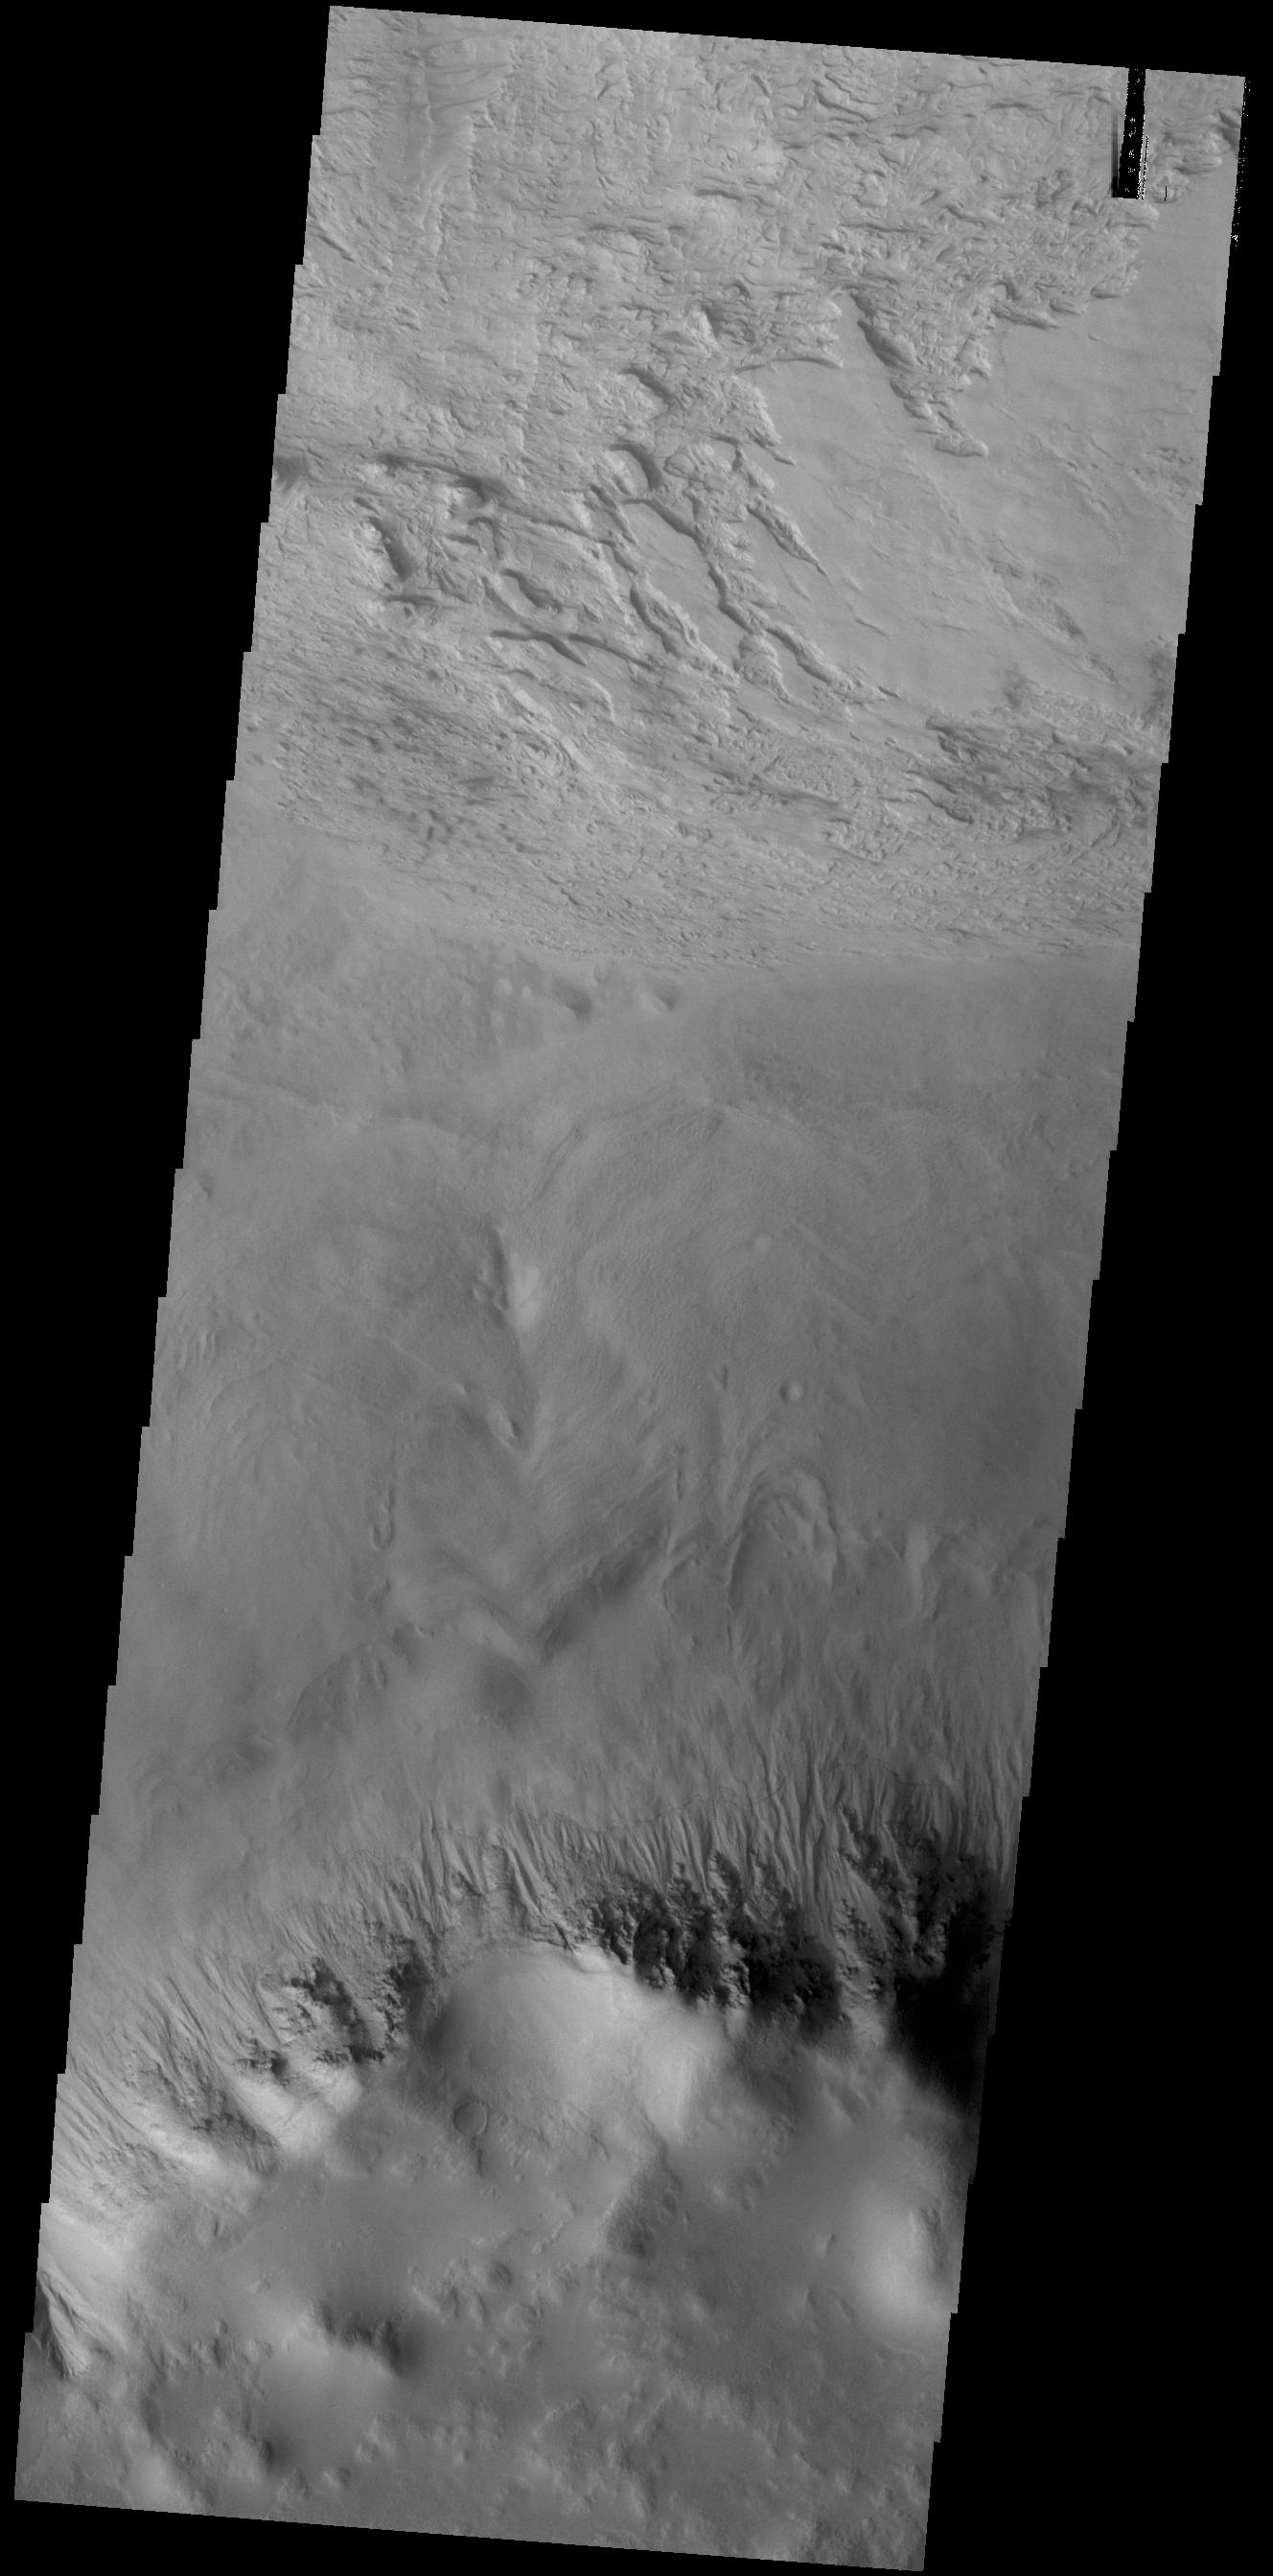 This image from NASAs Mars Odyssey shows a small portion of the floor of Galle Crater. This large crater is located on the eastern side of Argyre Planitia.